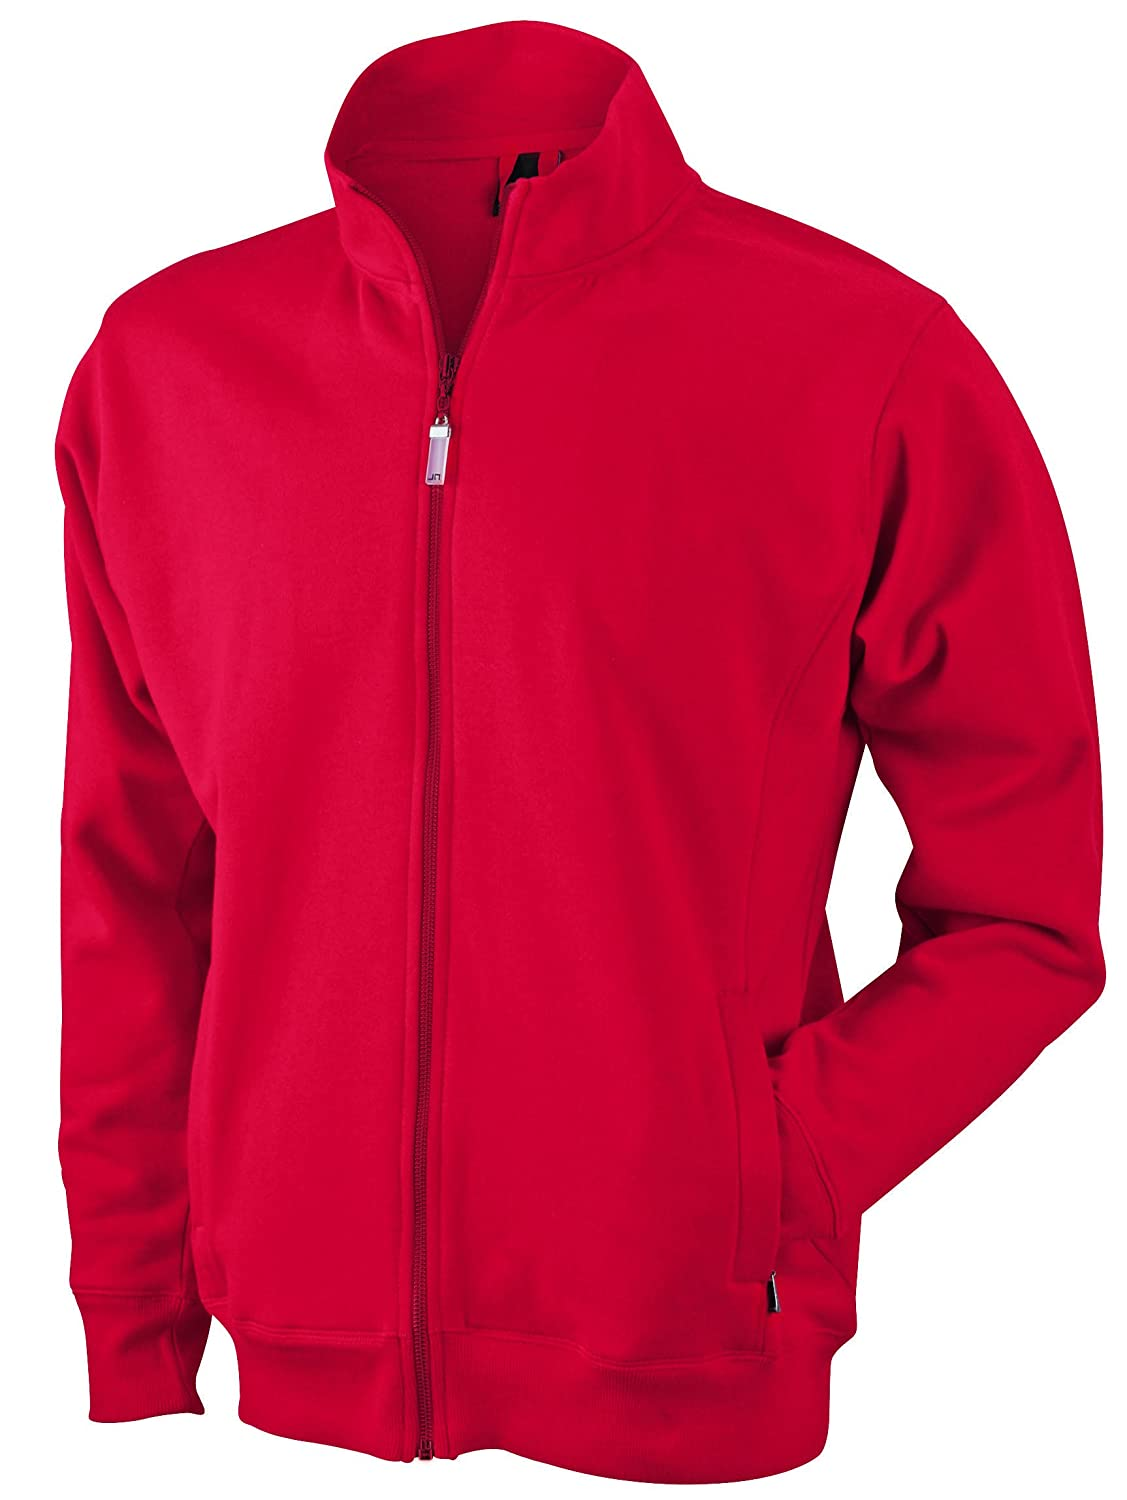 Rouge L JAMES & NICHOLSON Veste Sweat-Shirt